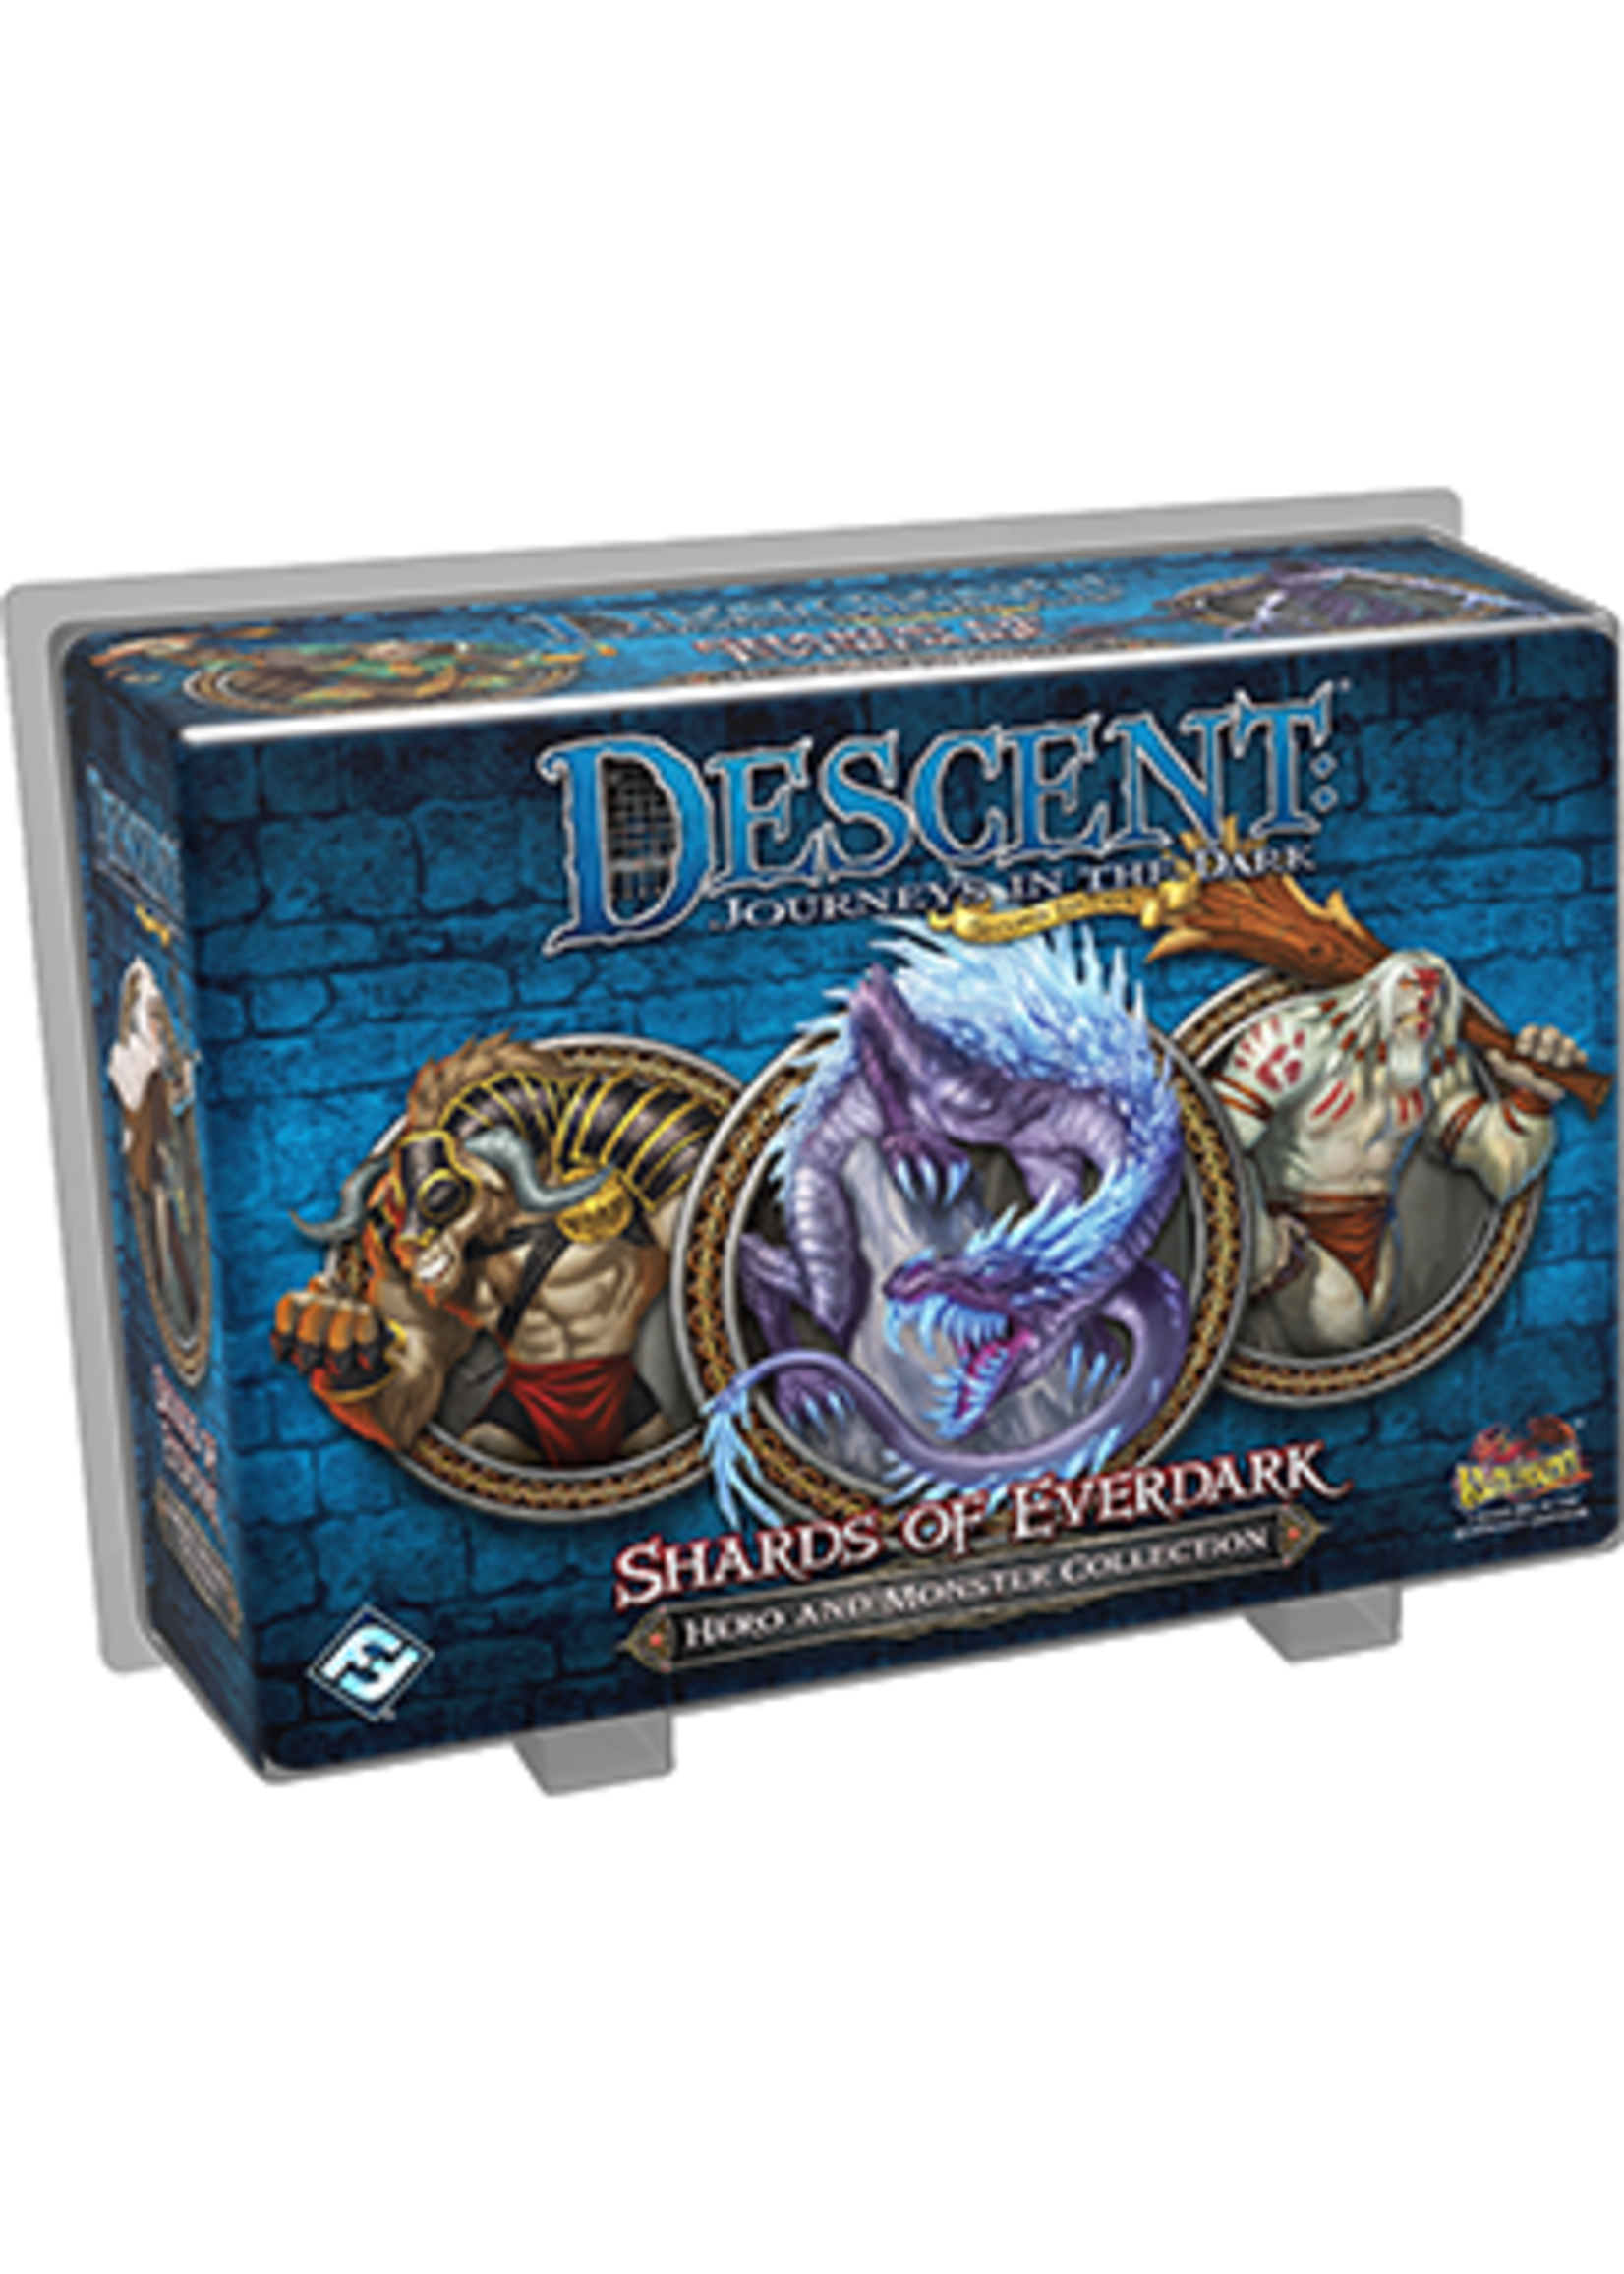 Descent Journeys in the Dark 2nd Edition: Shards of Everdark Hero and Monster Collection